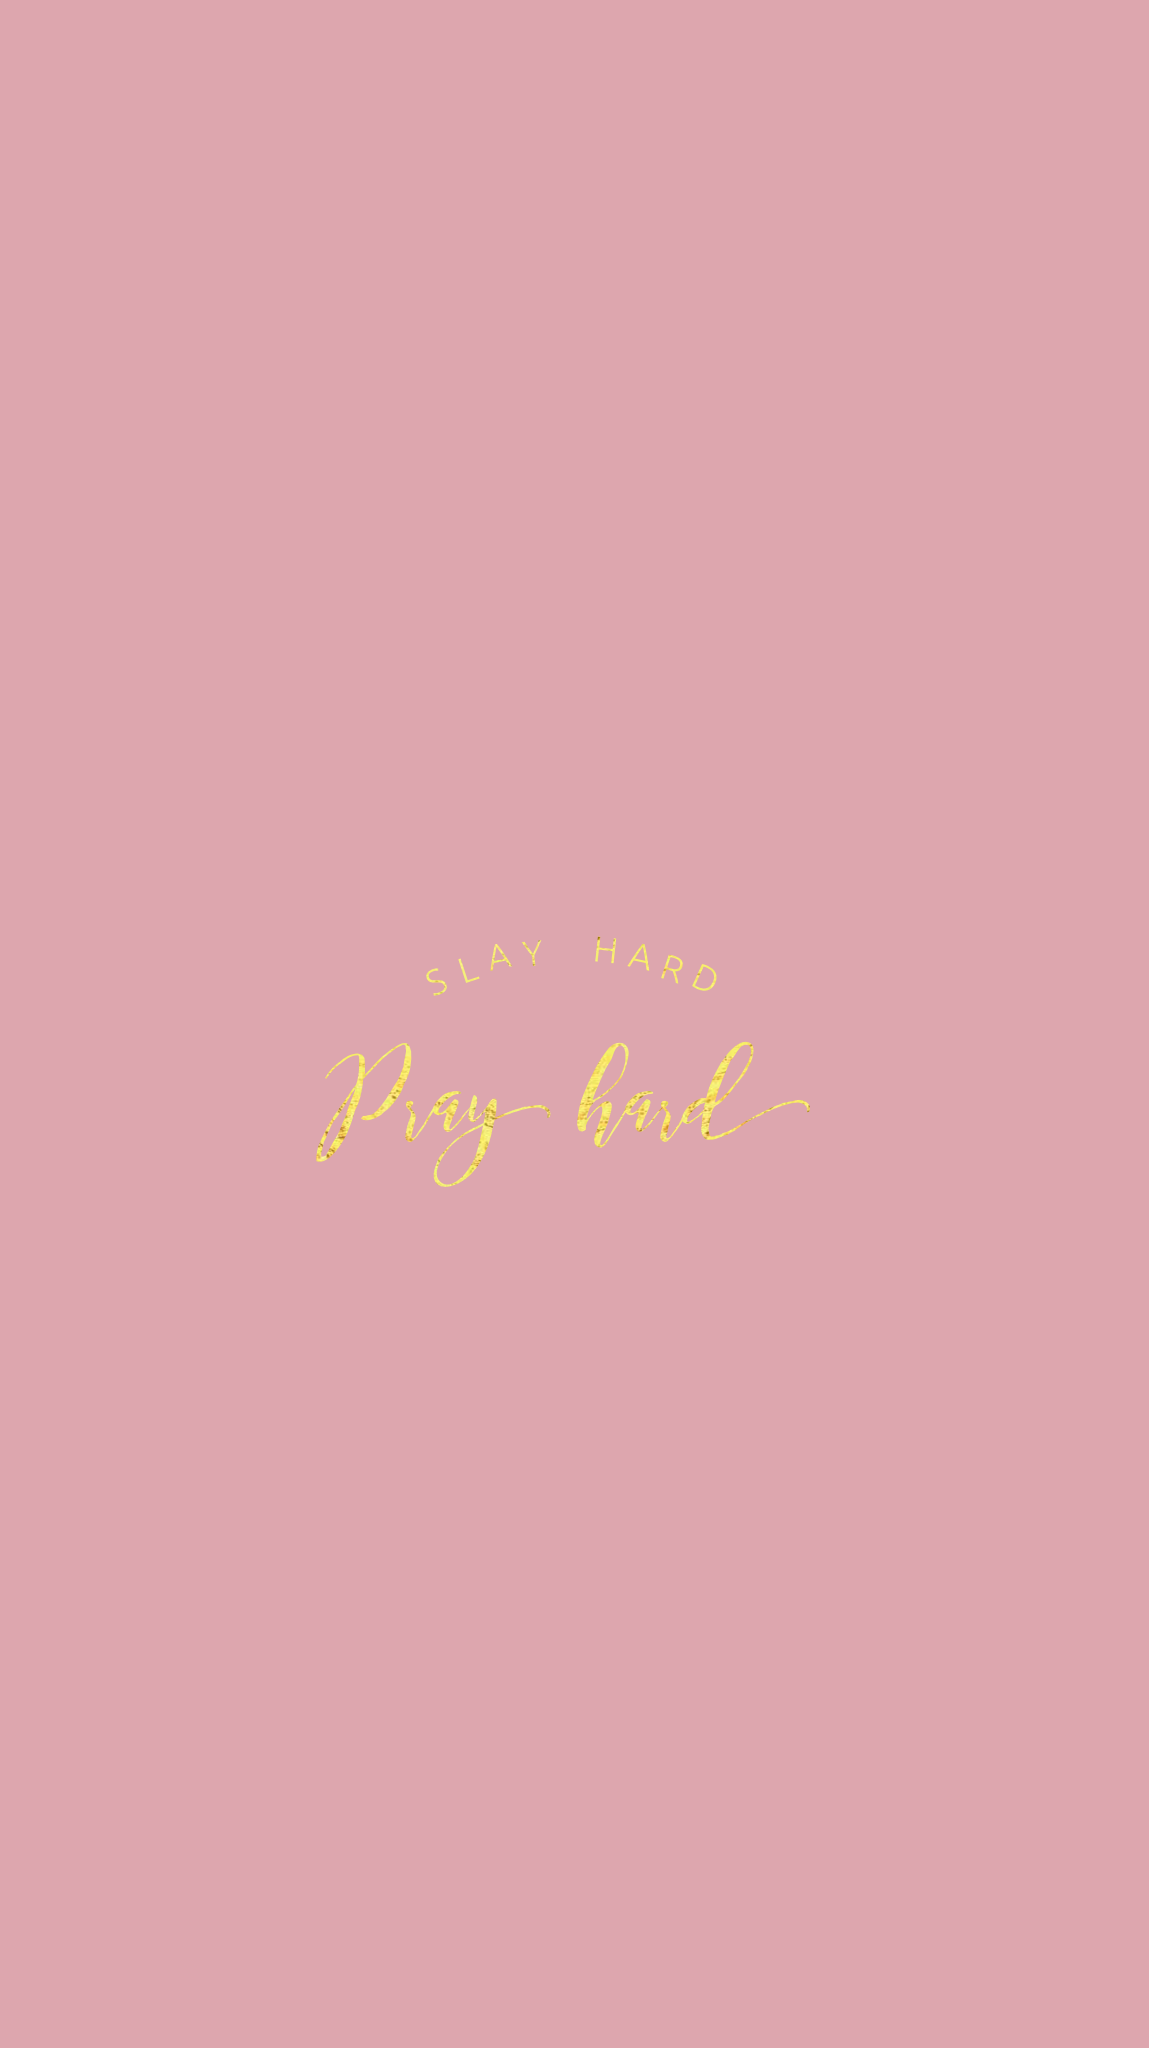 Rose Gold Pretty Positivity Iphone Wallpaper Evaland Iphone Wallpaper Quotes Love Pink Wallpaper Iphone Iphone Wallpaper